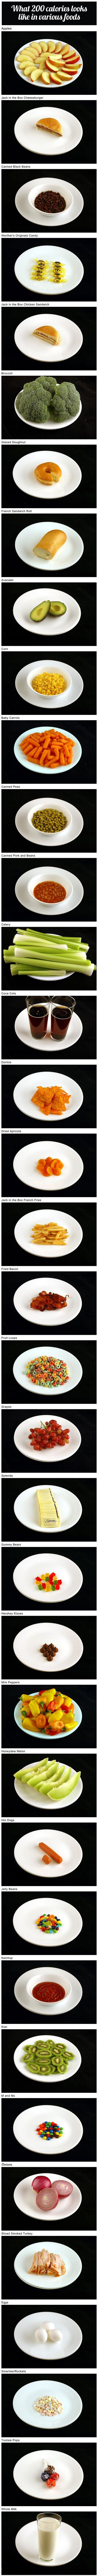 What 200 calories looks like. A good visual